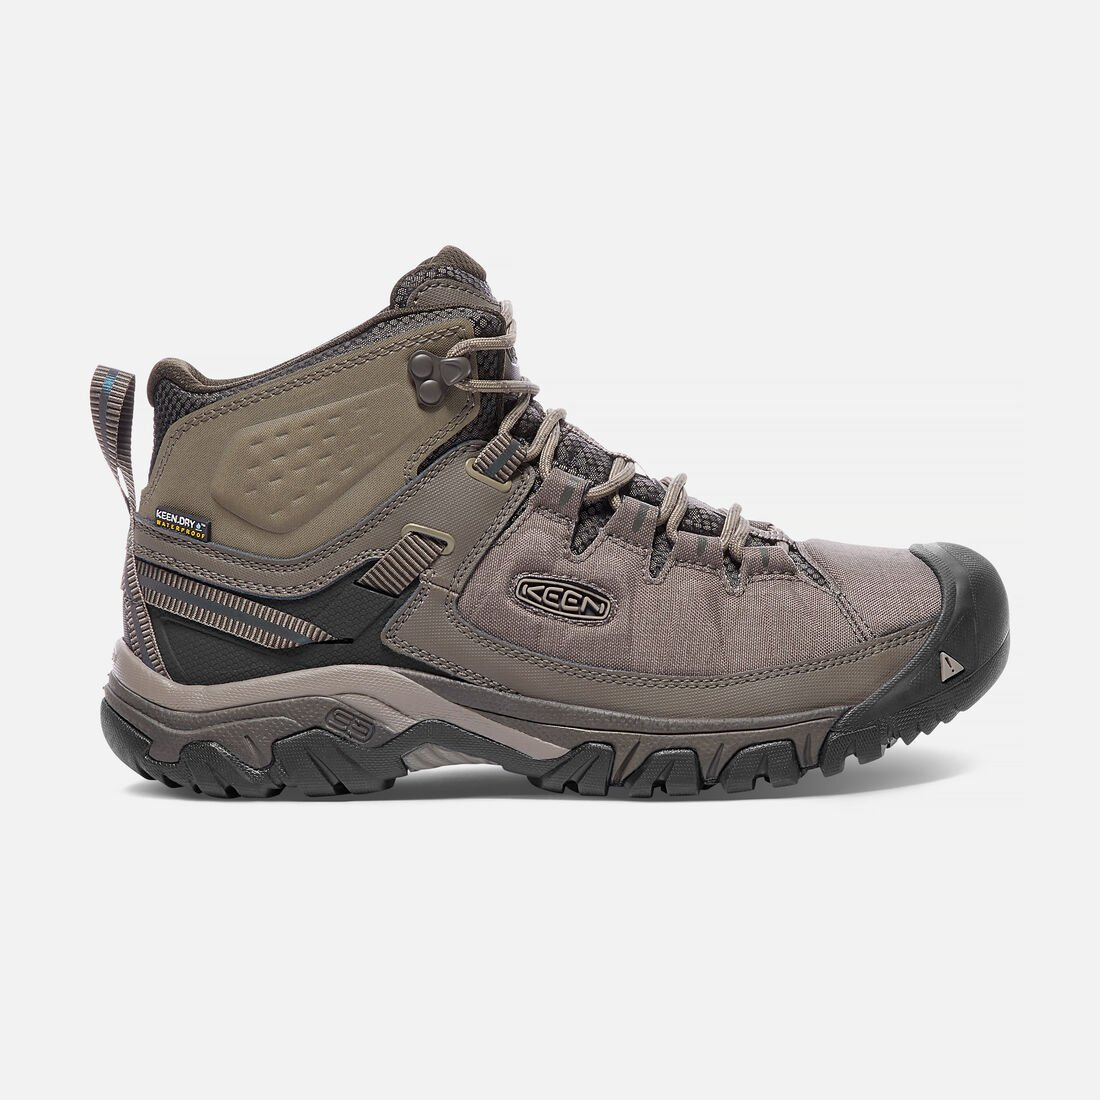 MEN'S TARGHEE EXP WATERPROOF  WIDE FIT HIKING BOOTS in Bungee Cord/Brindle - large view.